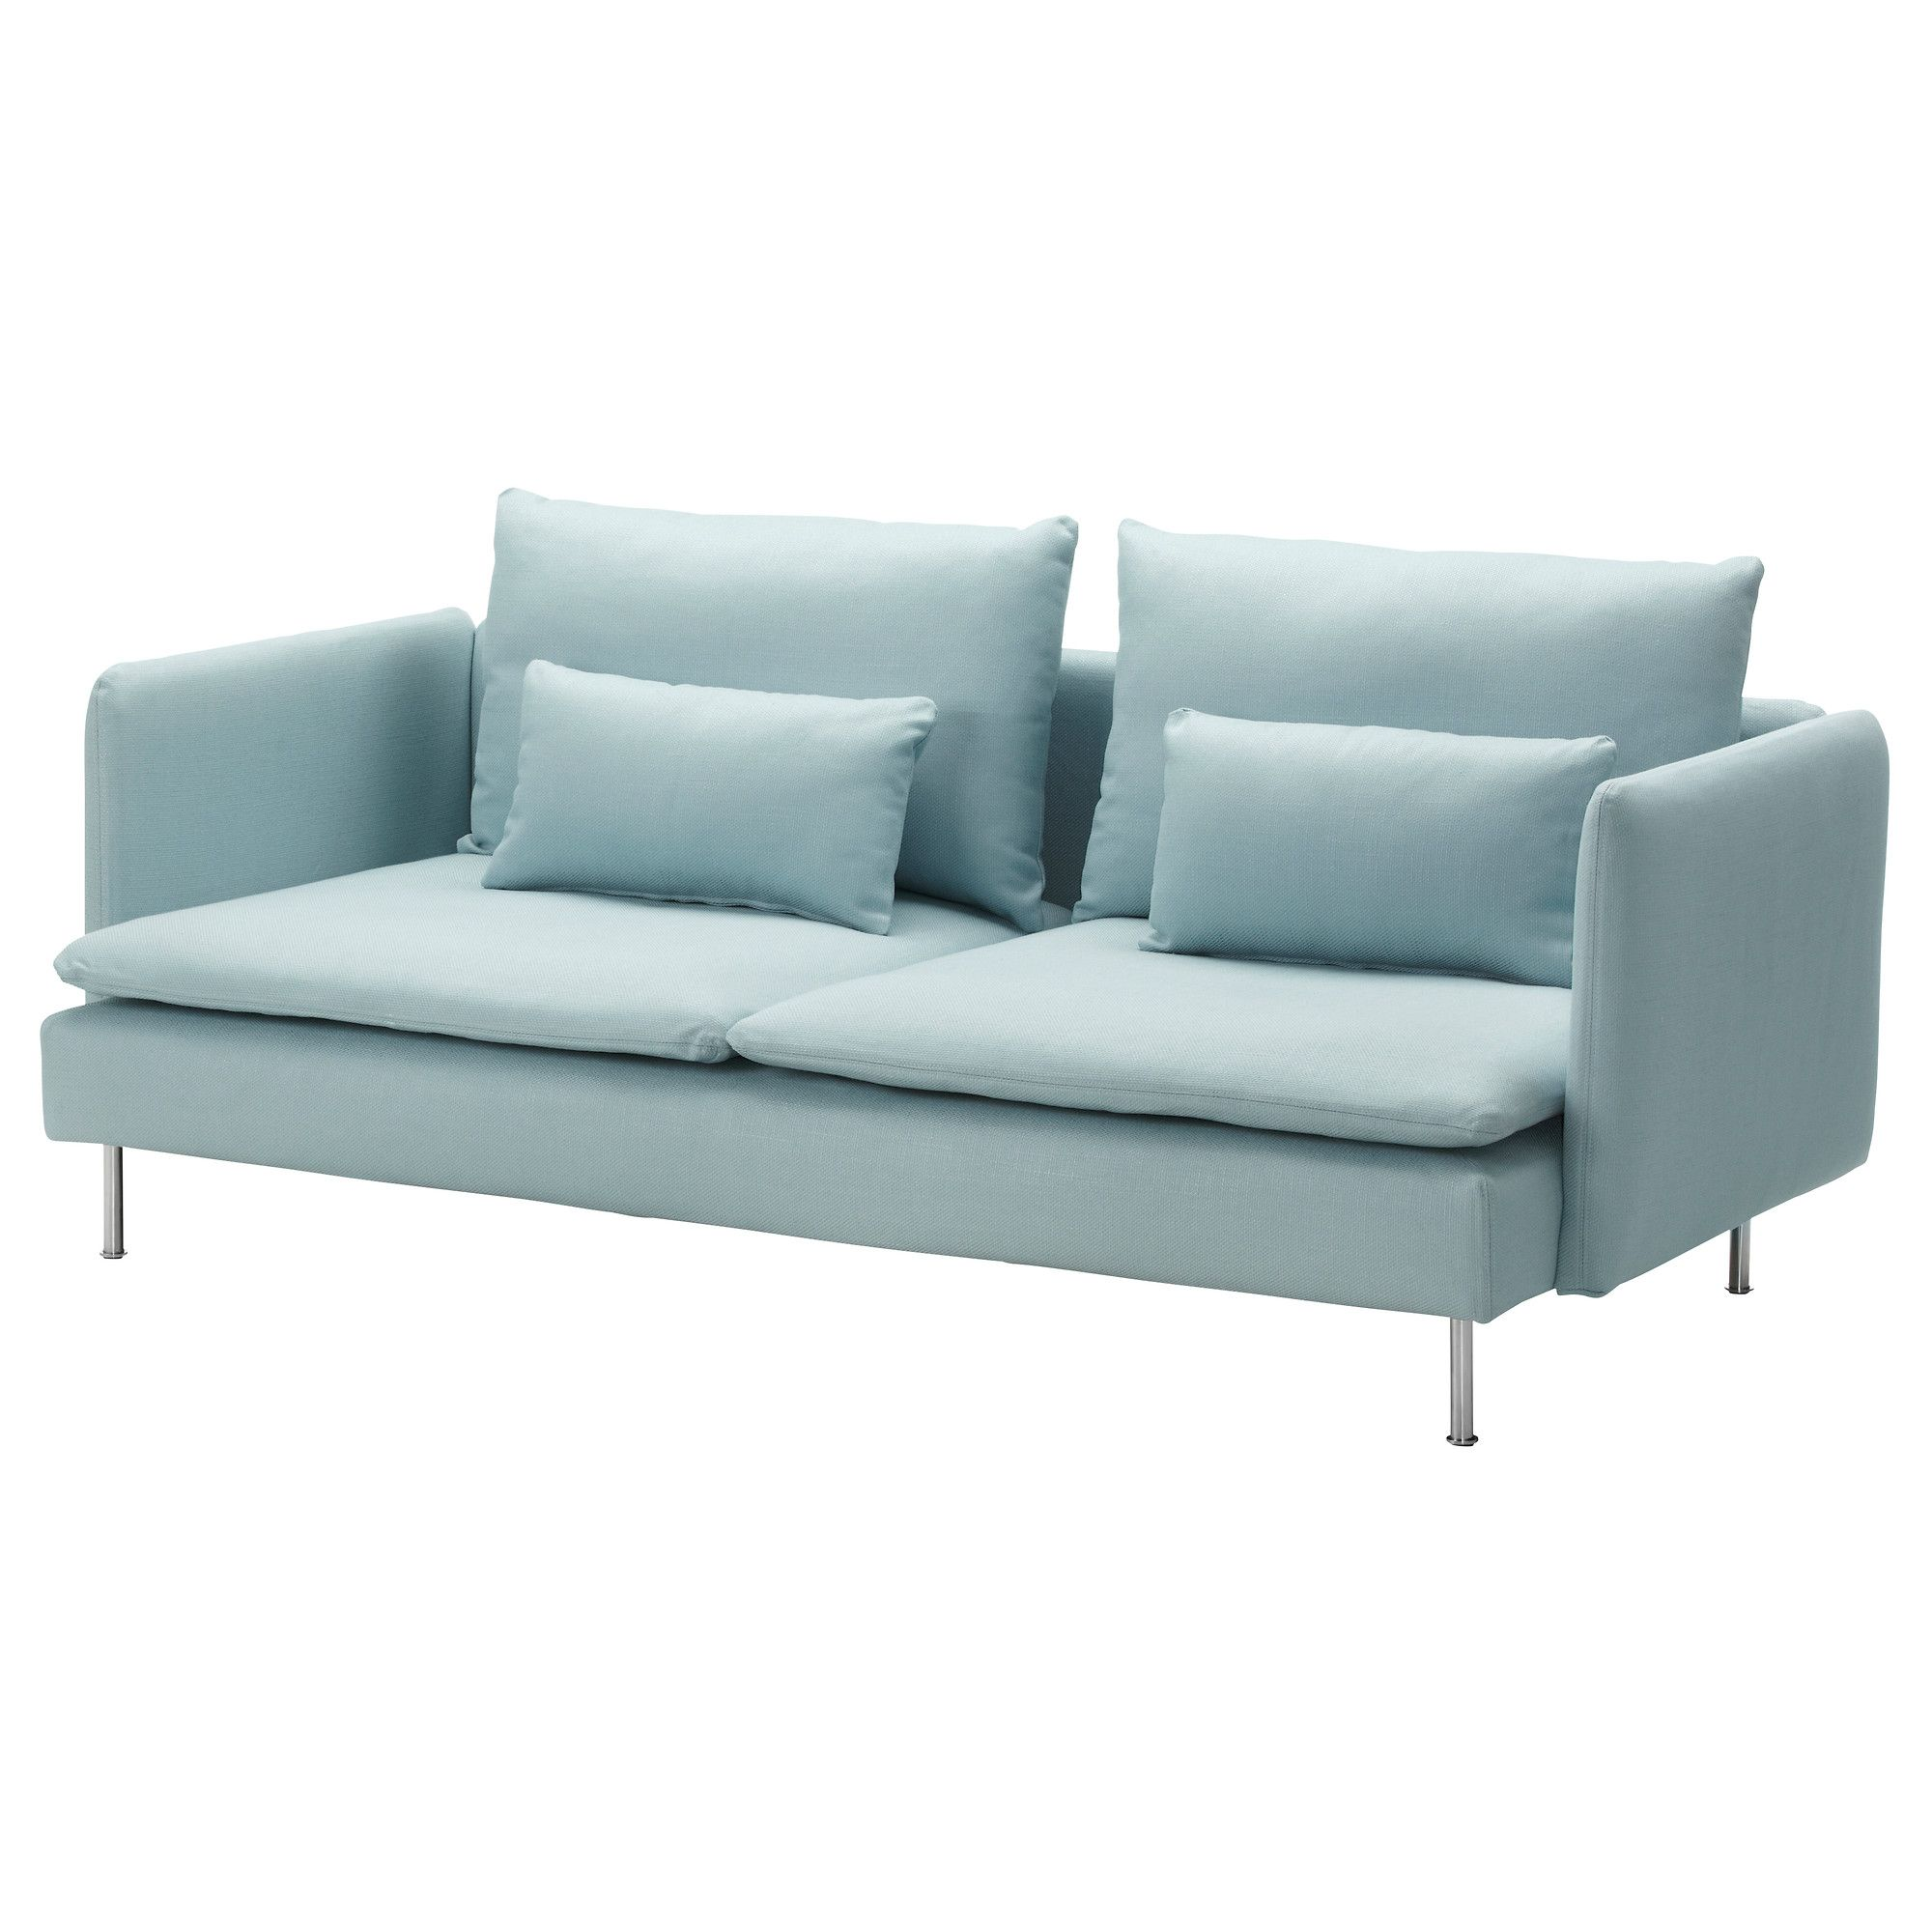 Ikea Sofa 3 SÖderhamn 3 Seat Sofa Samsta Dark Grey Light Turquoise